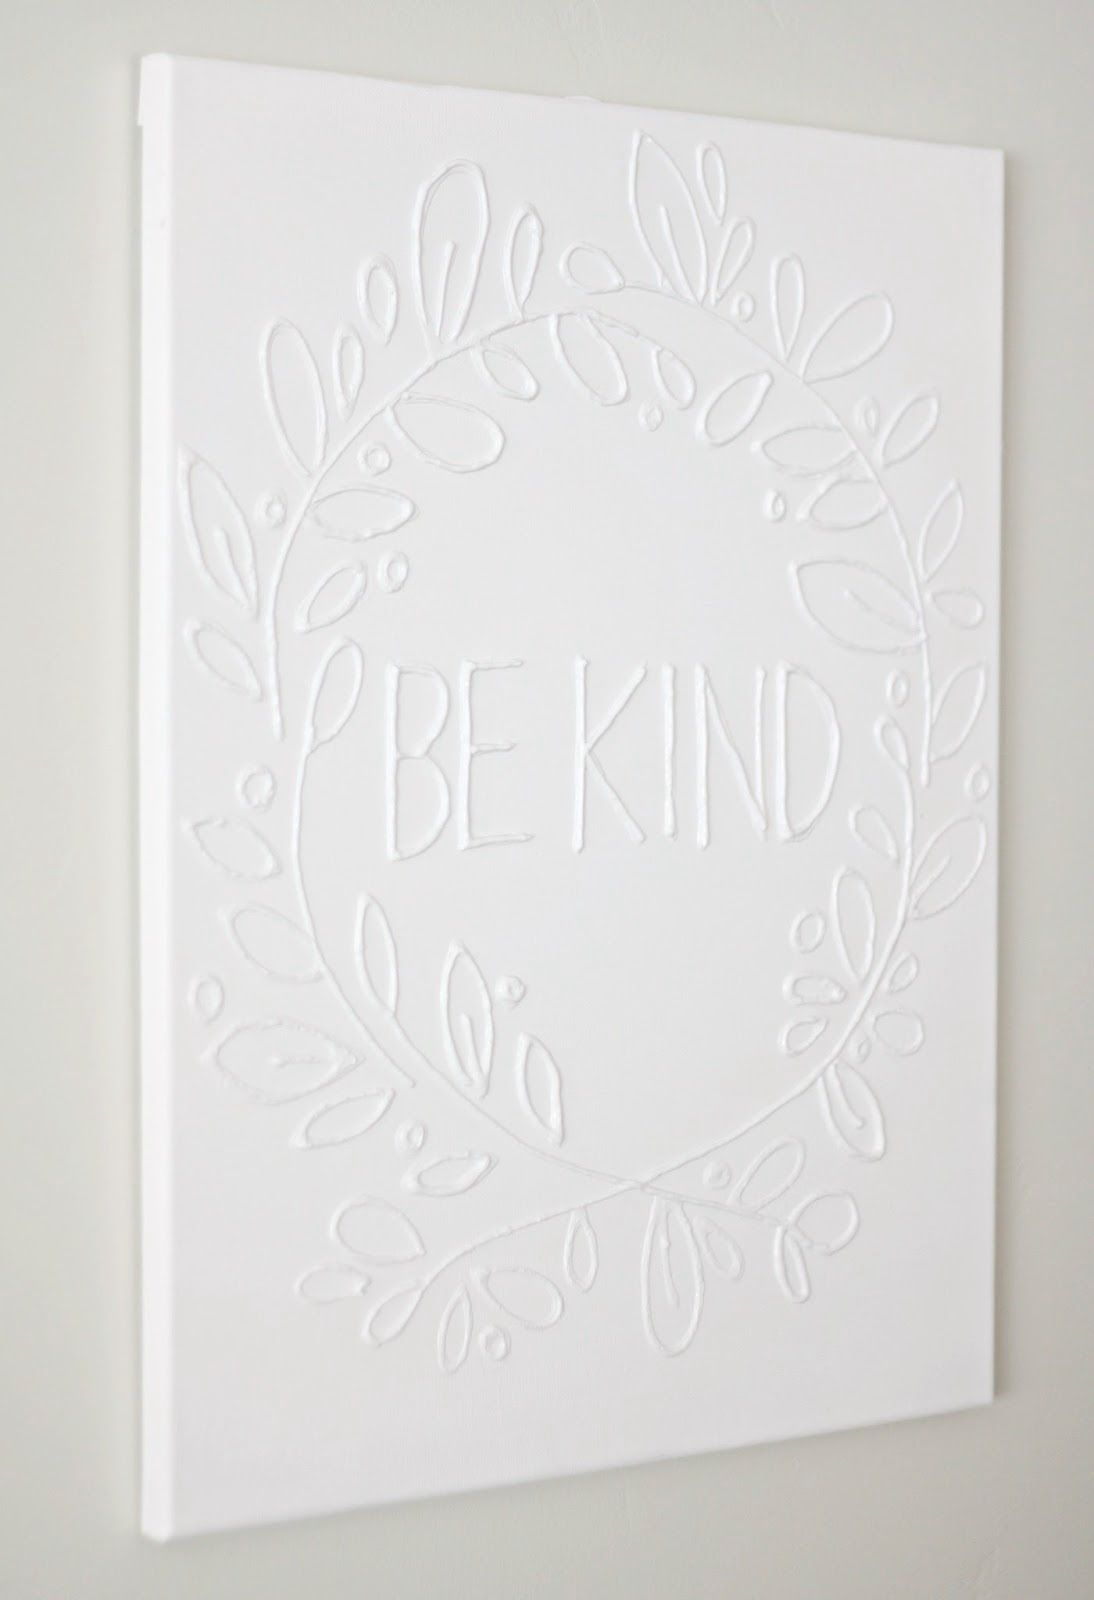 Make Canvas Wall Art with Glue | Canvas walls, Canvases and Walls